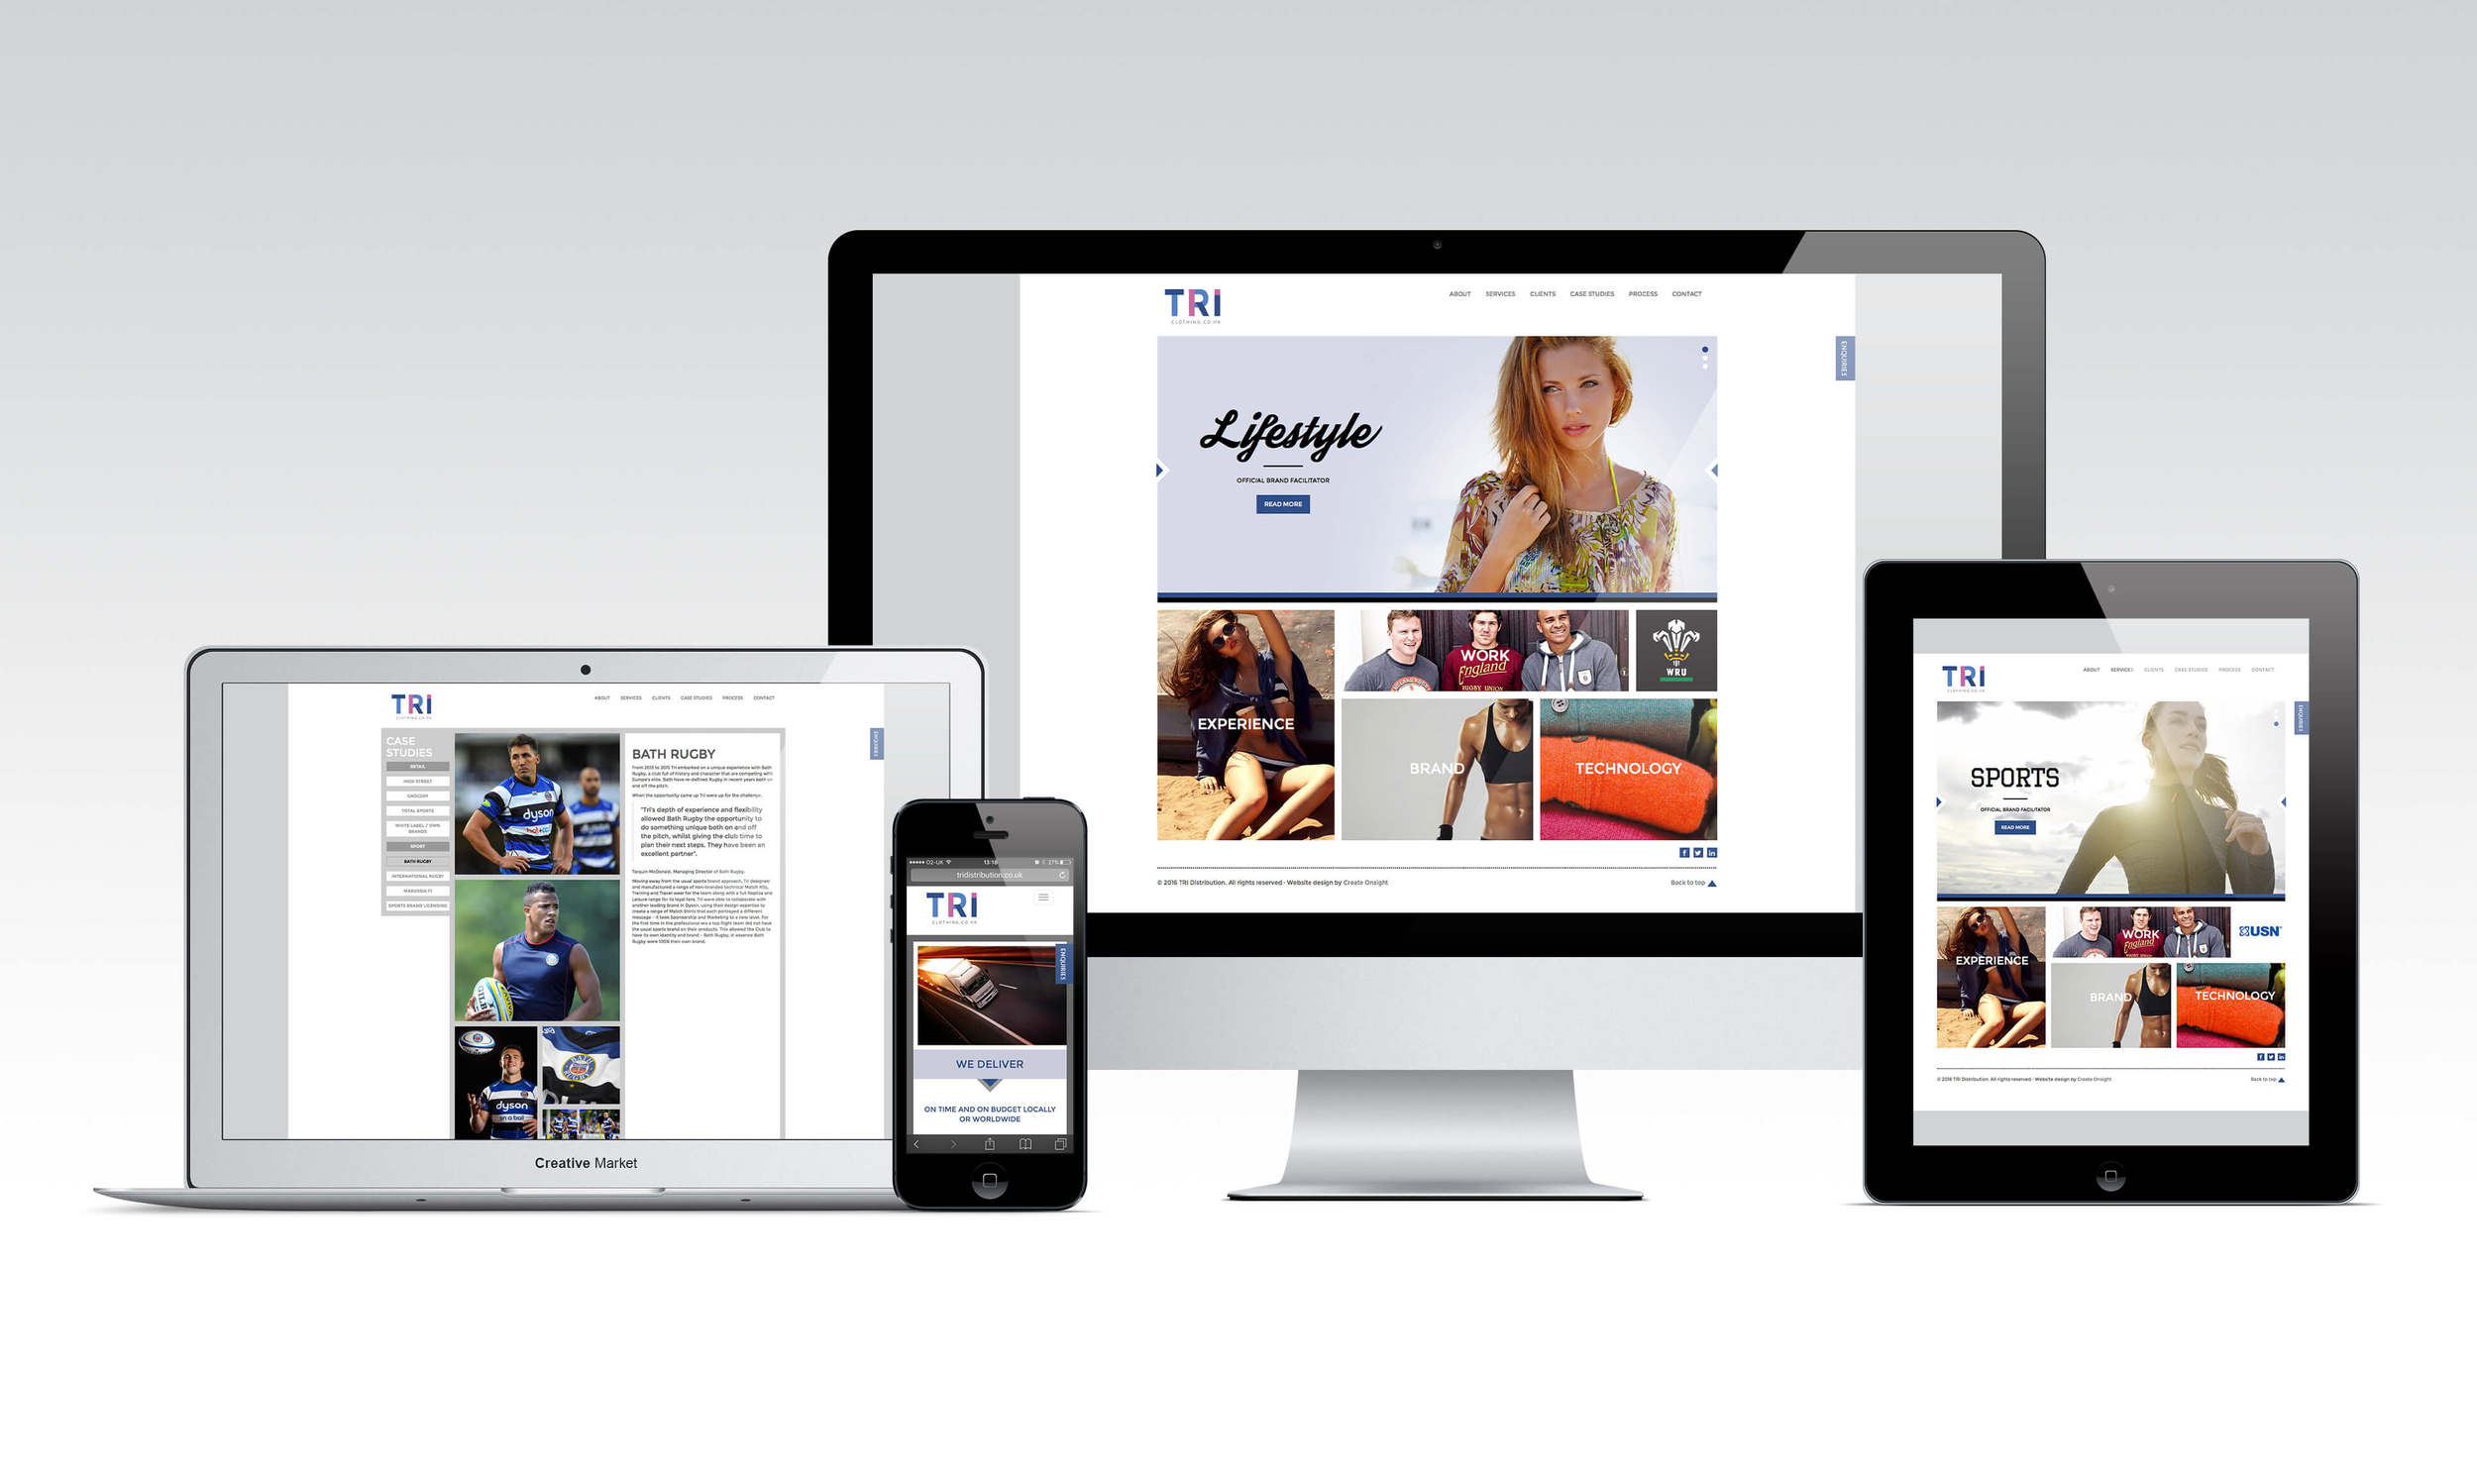 TRI Clothing Wordpress website design, development and round the clock support.